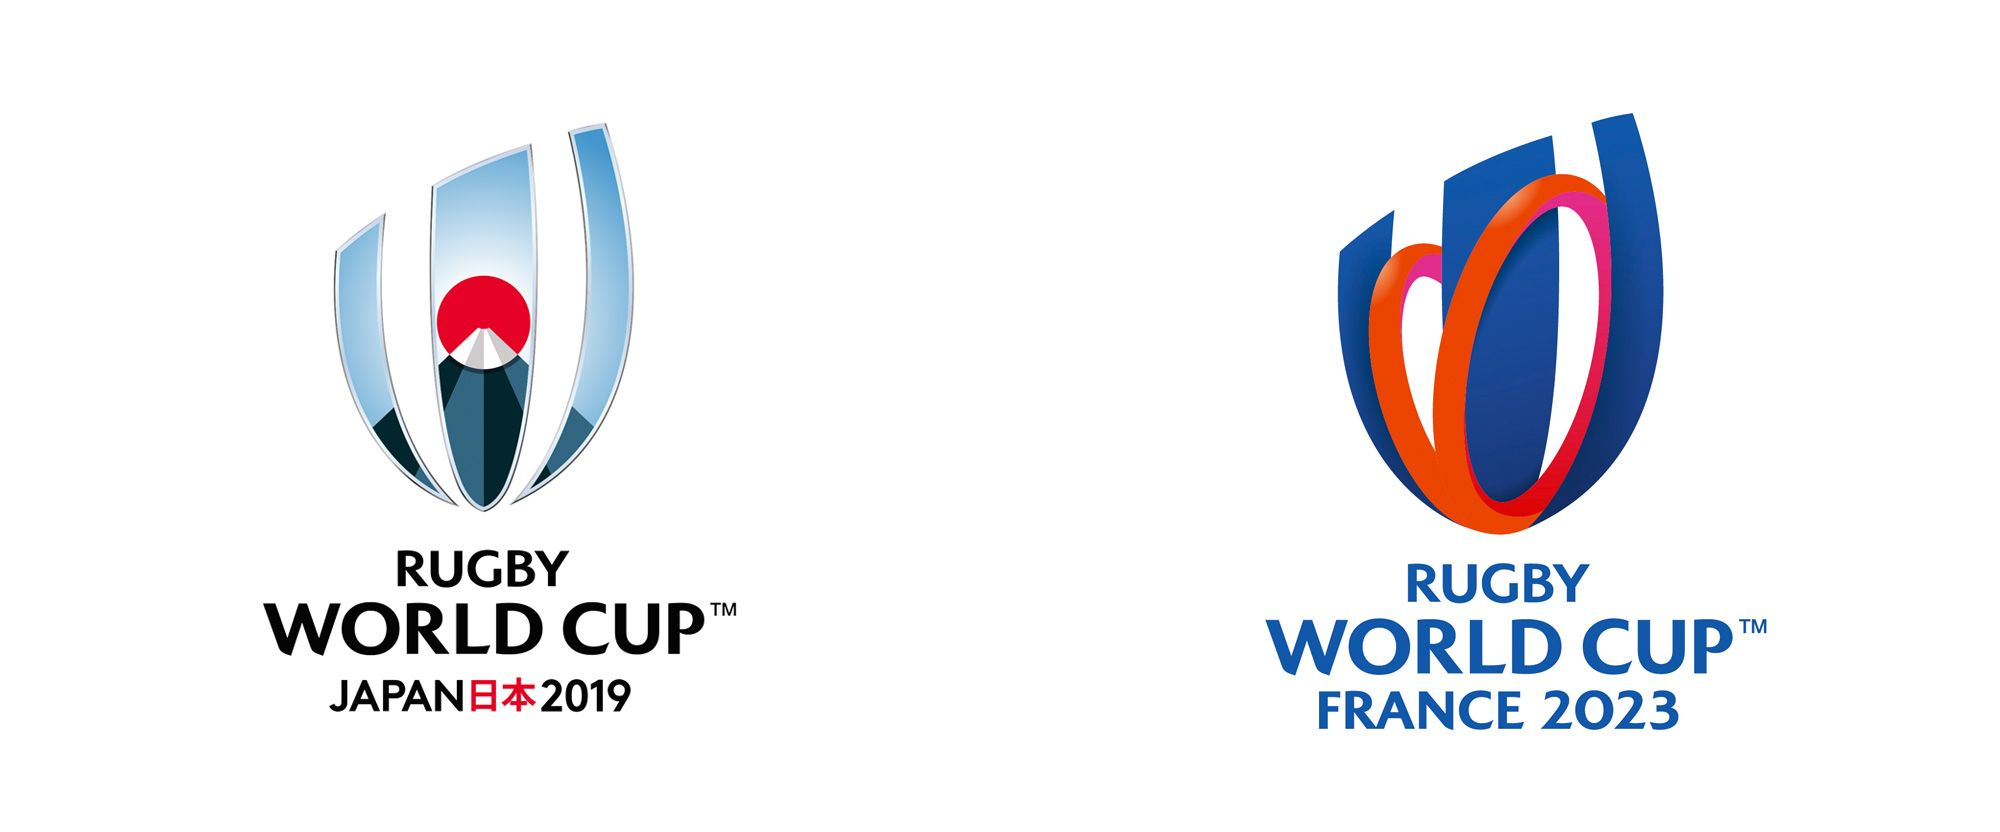 New Logo For Rugby World Cup Rugby World Cup World Cup Rugby